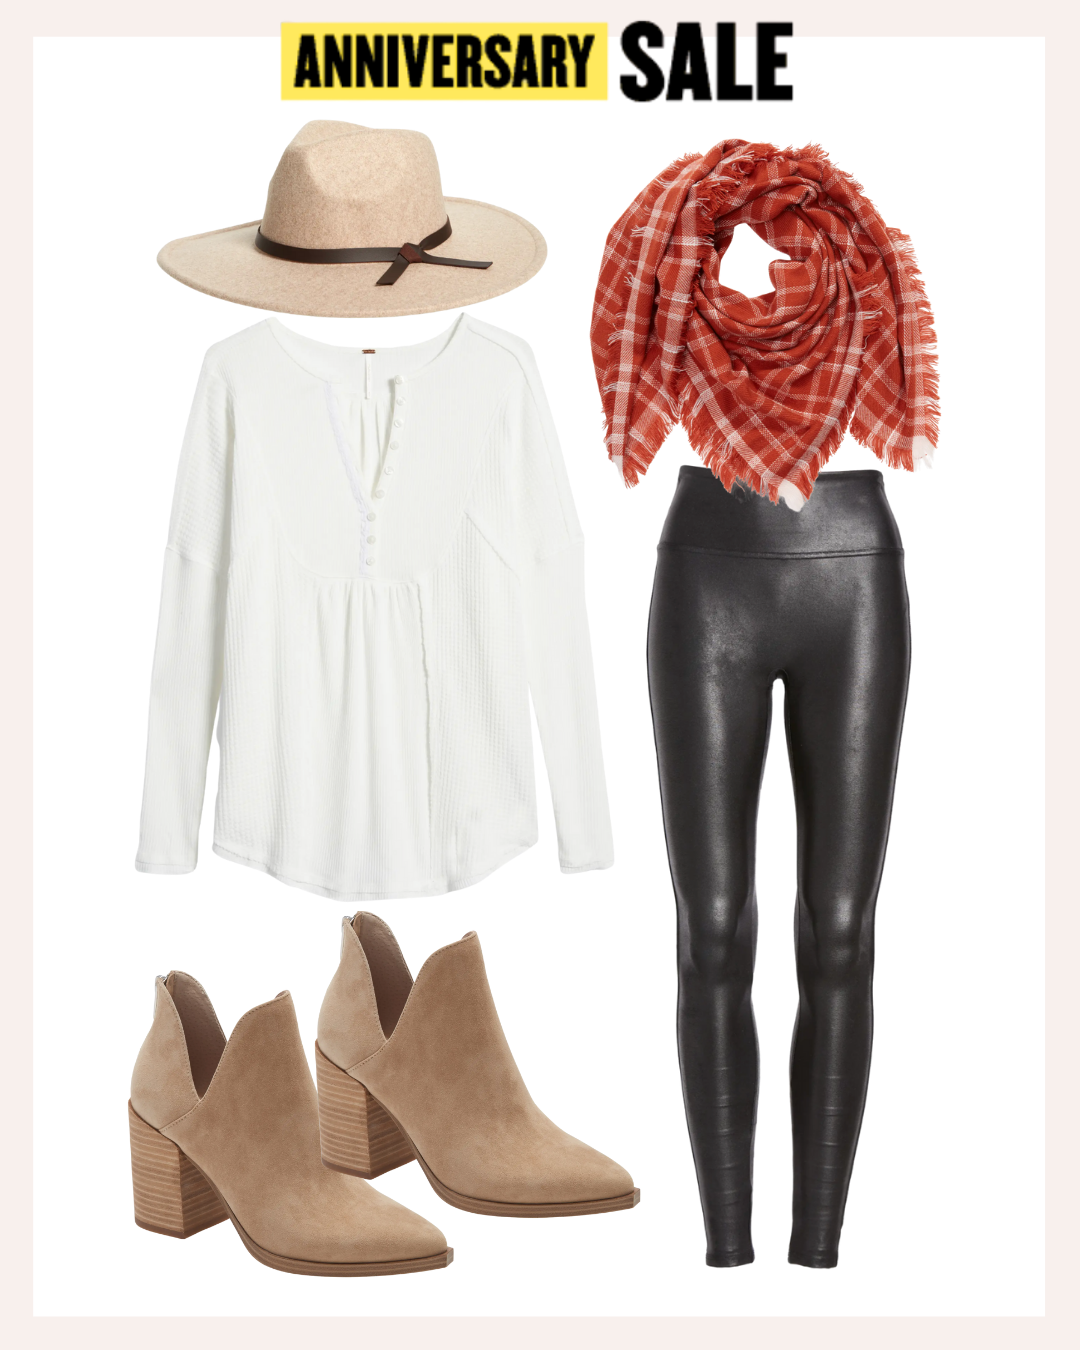 Fall outfit ideas 2021